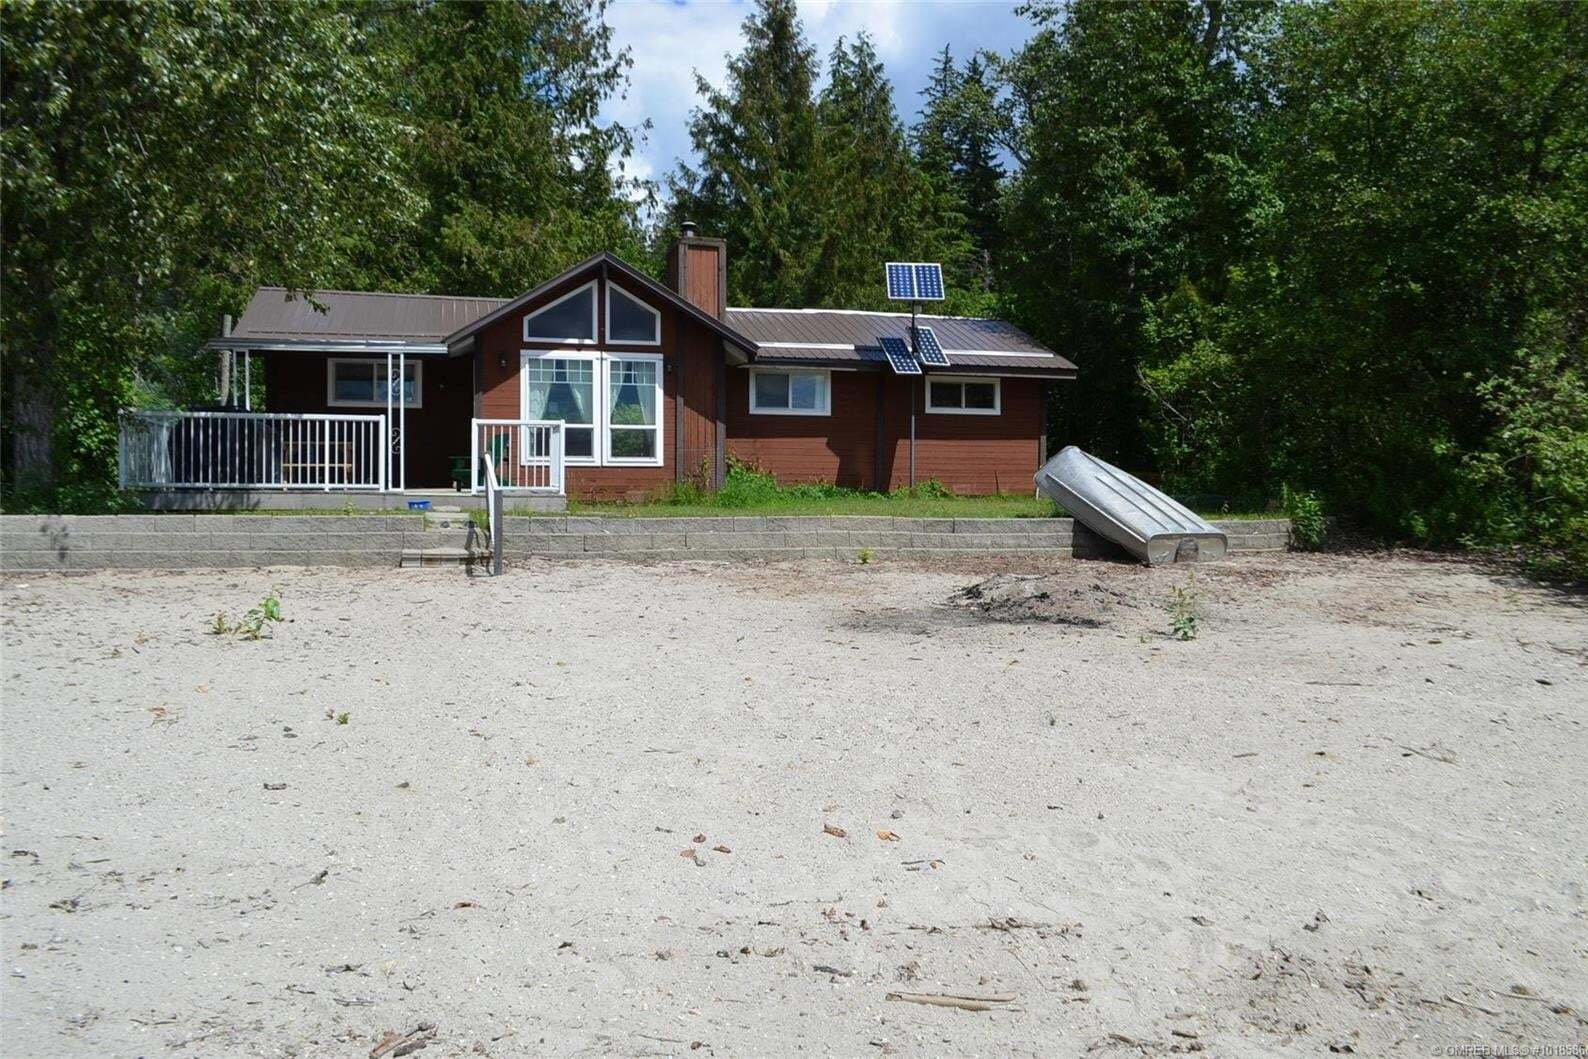 House for sale at Lot 8 Nellie Rd Seymour Arm British Columbia - MLS: 10185866